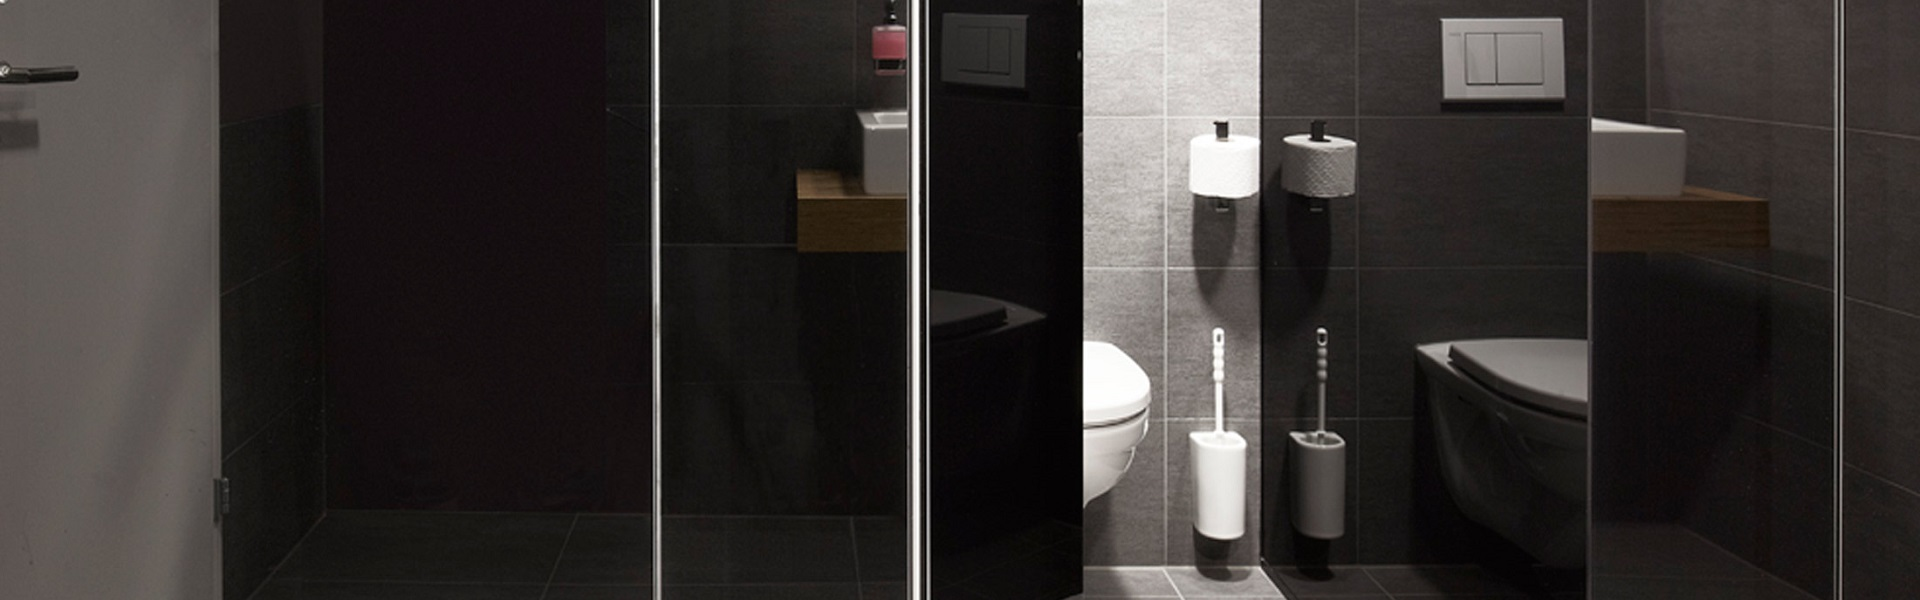 wc trennw nde glas nussbaum ag aarberg. Black Bedroom Furniture Sets. Home Design Ideas